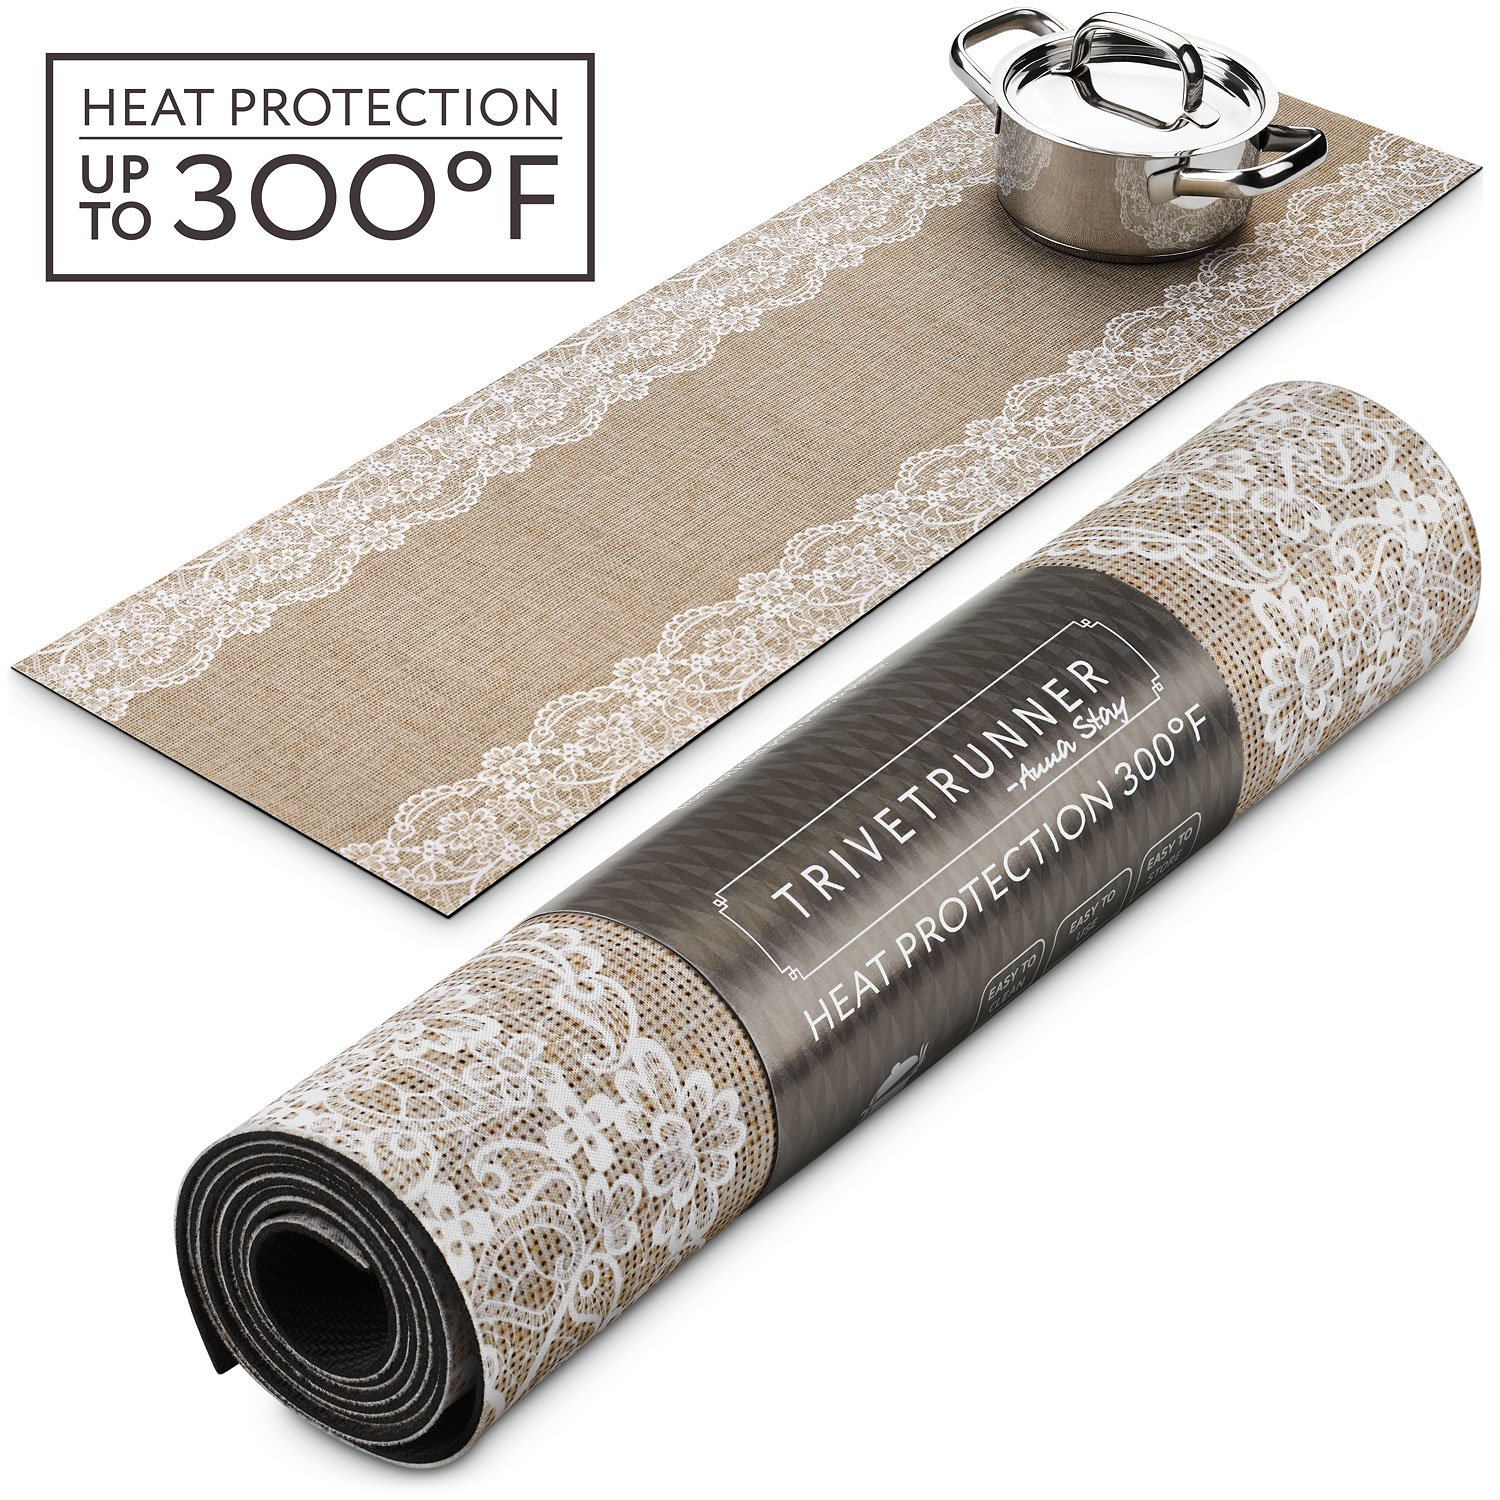 Trivetrunner :Decorative Trivet and Kitchen Table Runners Handles Heat Up to 300F, Anti Slip, Hand Washable, and Convenient for Hot Dishes and Pots,Hand Washable (Jute and Lace)